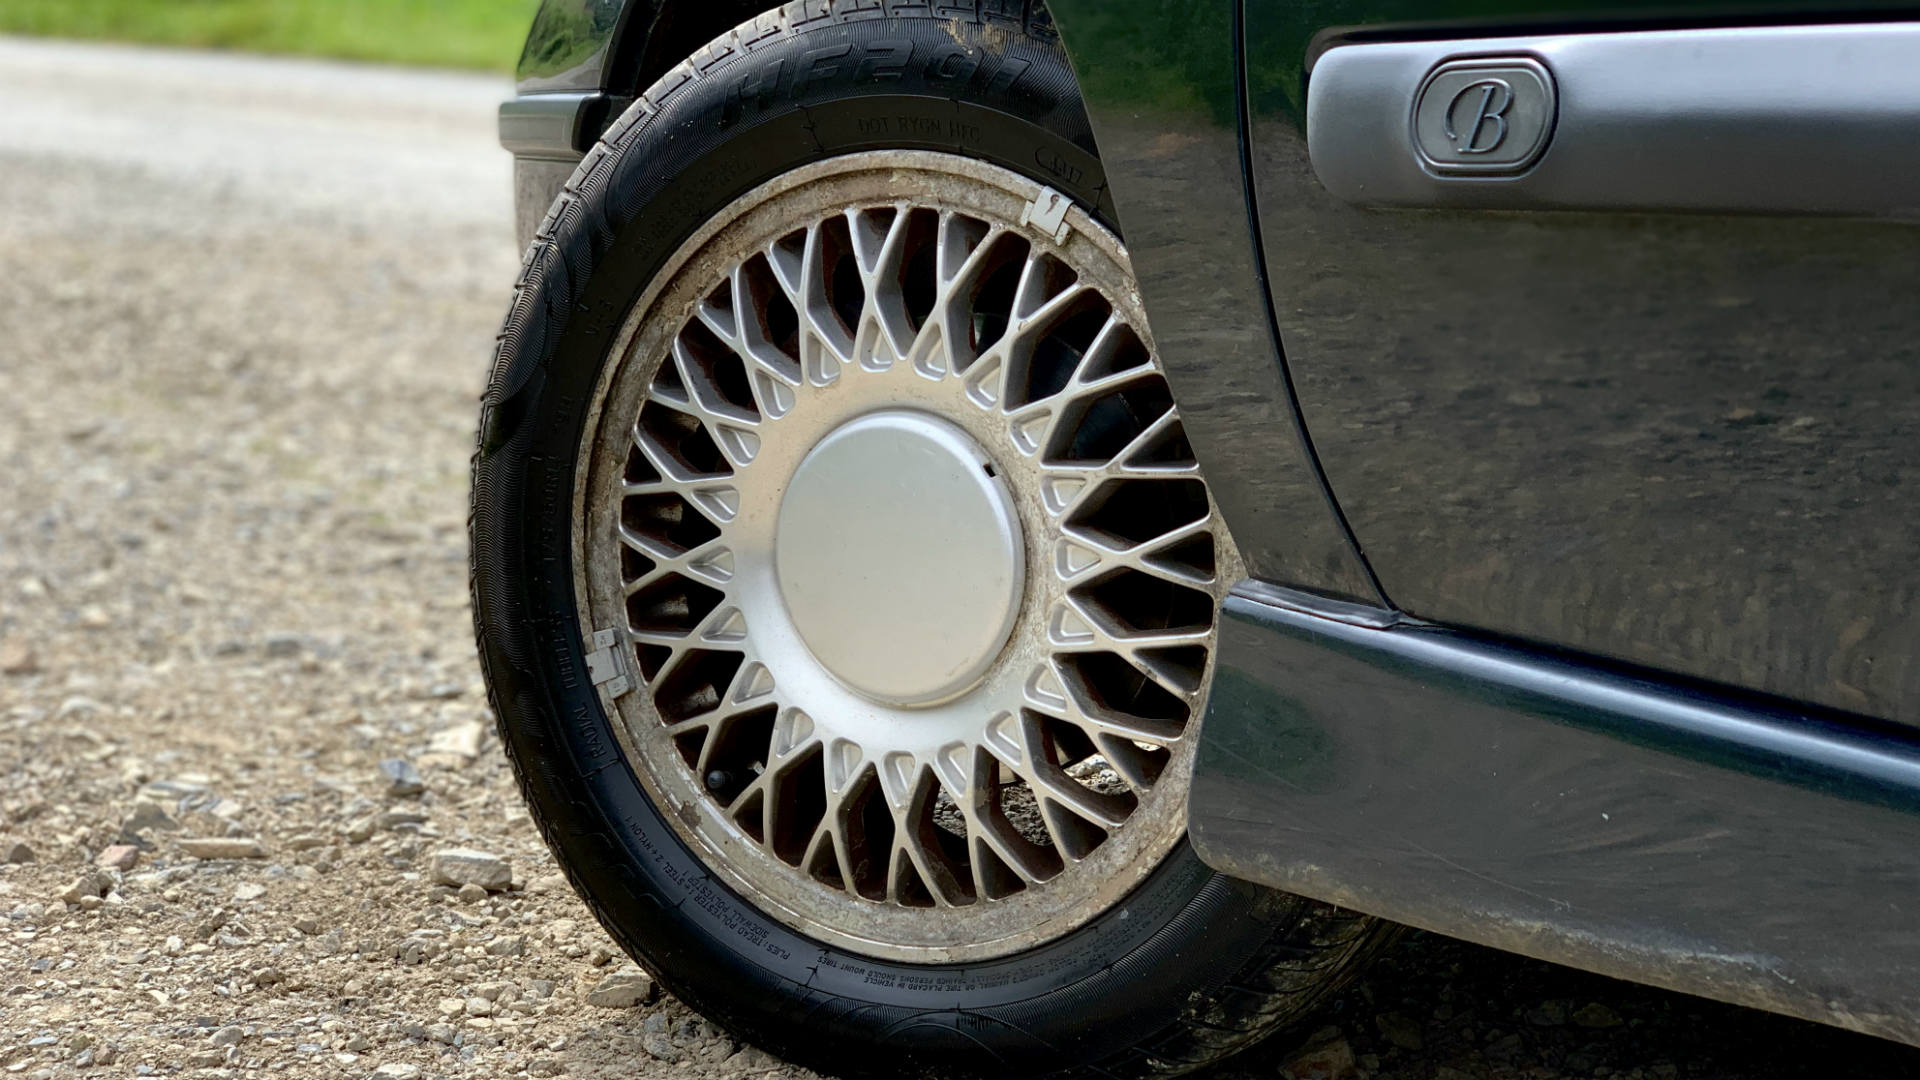 Clio Baccara alloy wheel and part-worn tyre